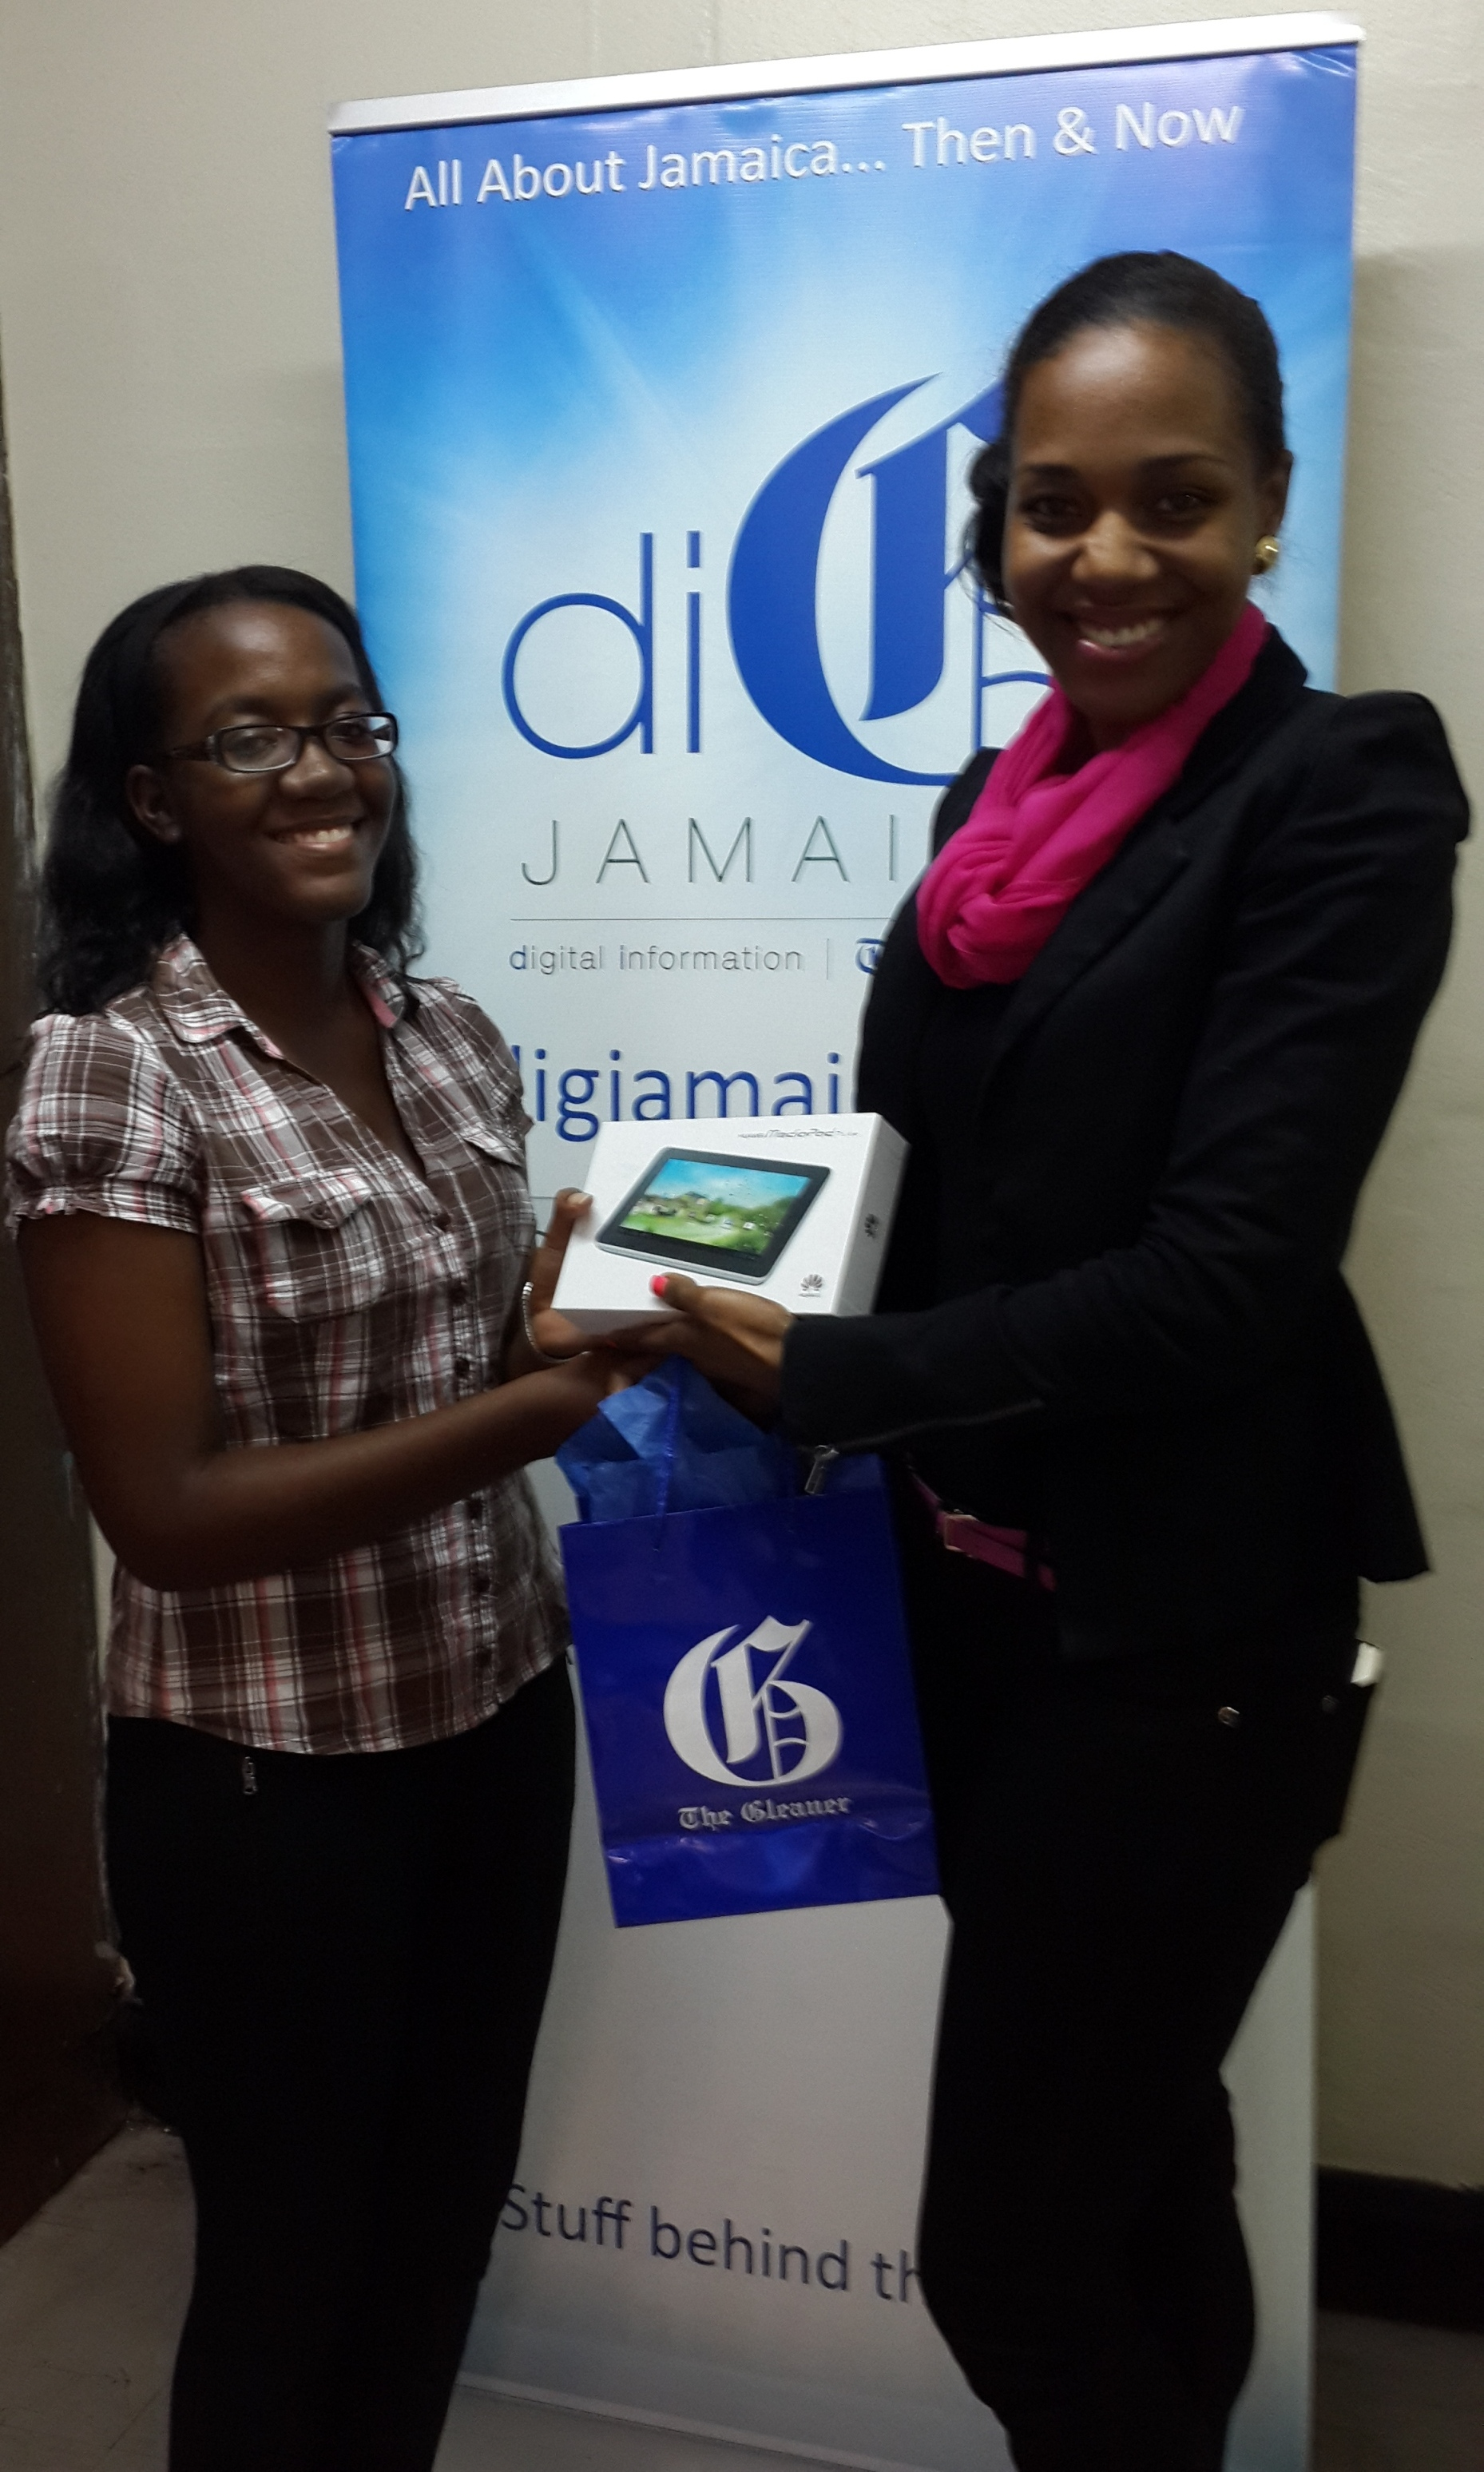 winning essay at a true democracy dig blog danniel brown left collects her prize from terri karelle reid brand manager gleaner online democracy is a form of government